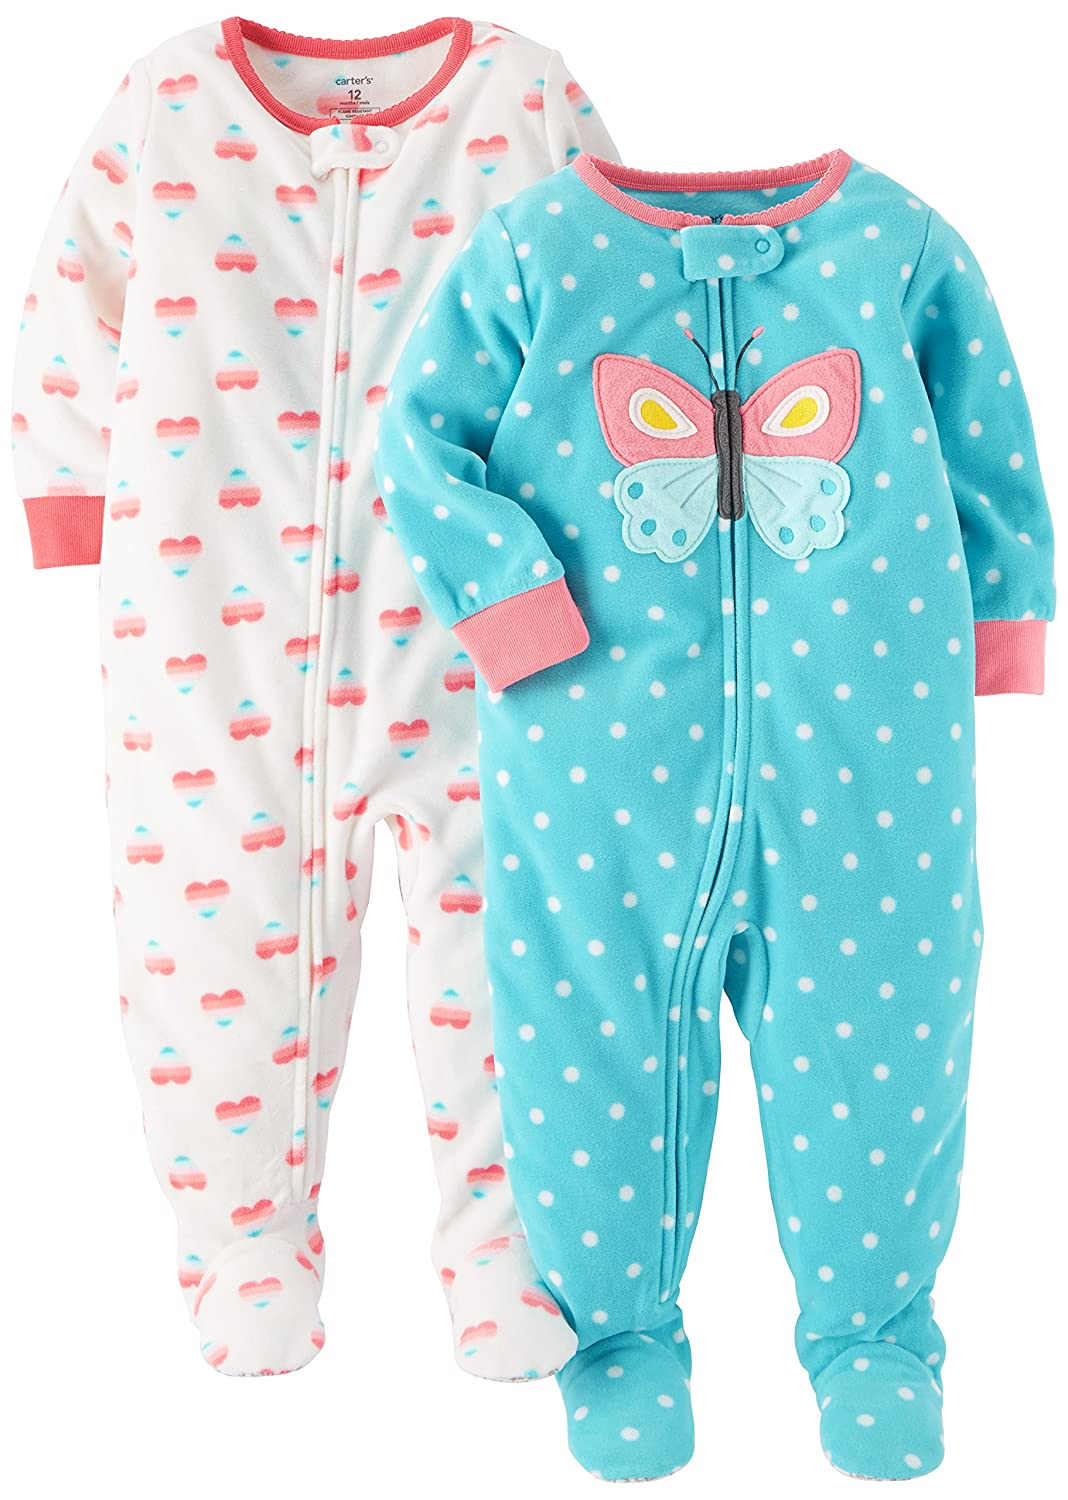 606764bbb Amazon.com  Carter s Baby and Toddler Girls  2-Pack Fleece Footed ...